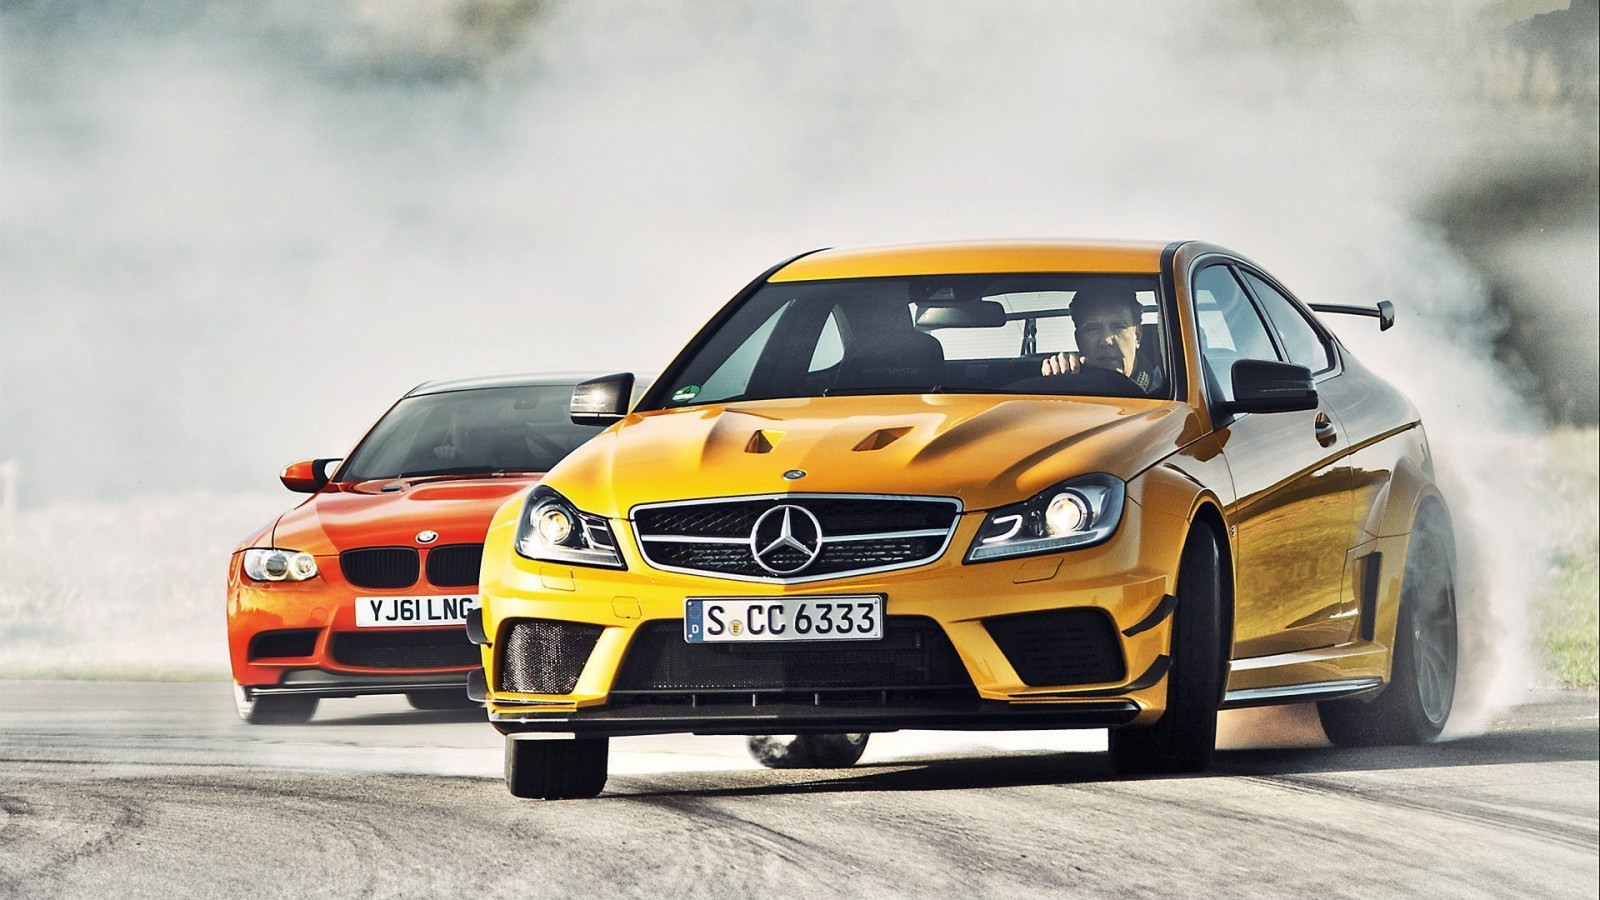 Mercedes Benz C63 Amg Yellow Wallpaper Picture 1600x900